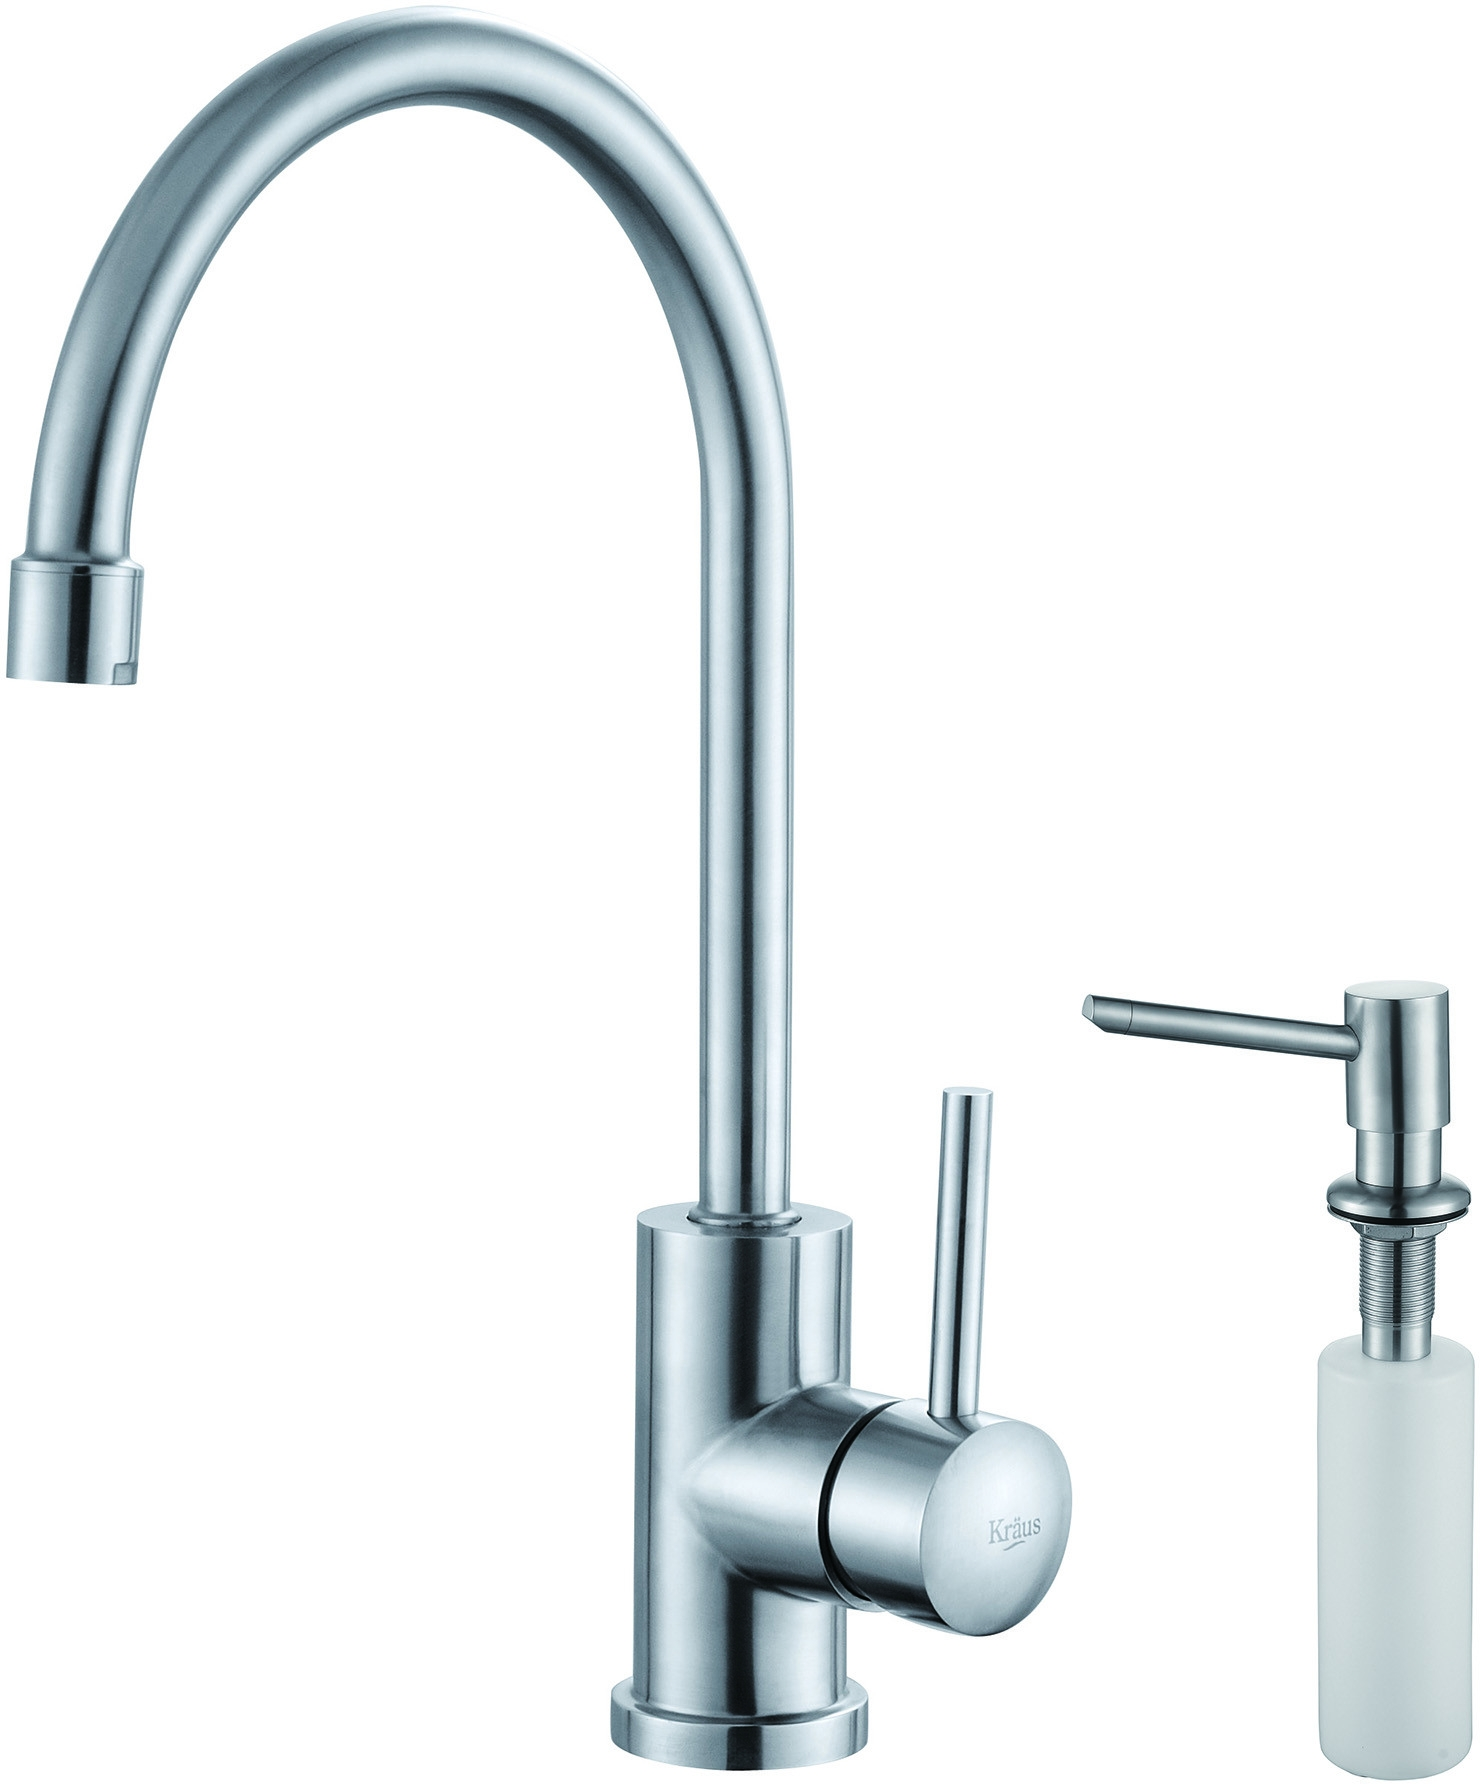 Ideas, rugby stainless steel faucets rugby stainless steel faucets alex lee kitchens rug showroom our warwickshire showroom 1480 x 1784  .